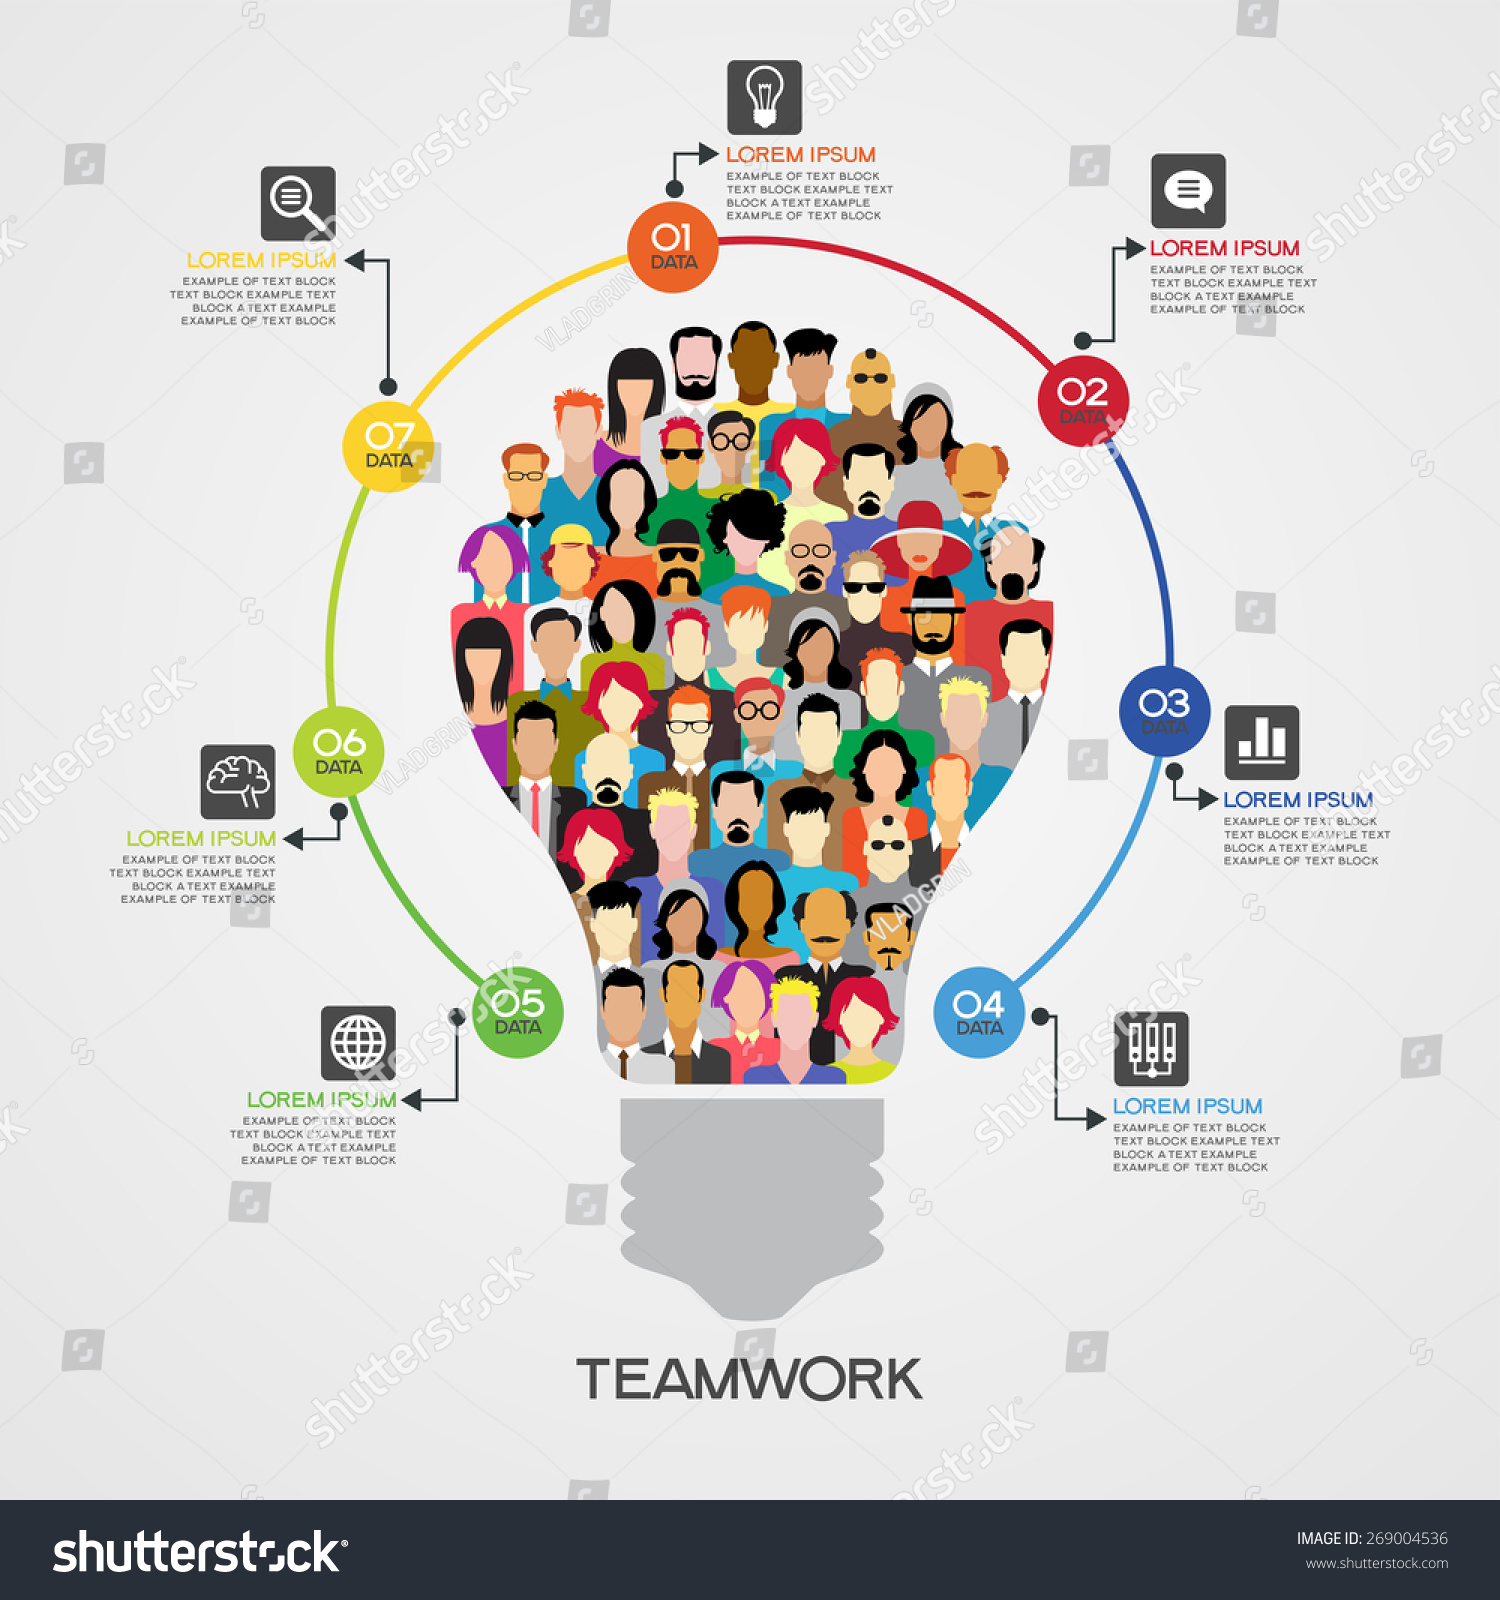 teamwork infographics background icons people form stock vector teamwork infographics background icons of people in the form of a light bulb surrounded interface